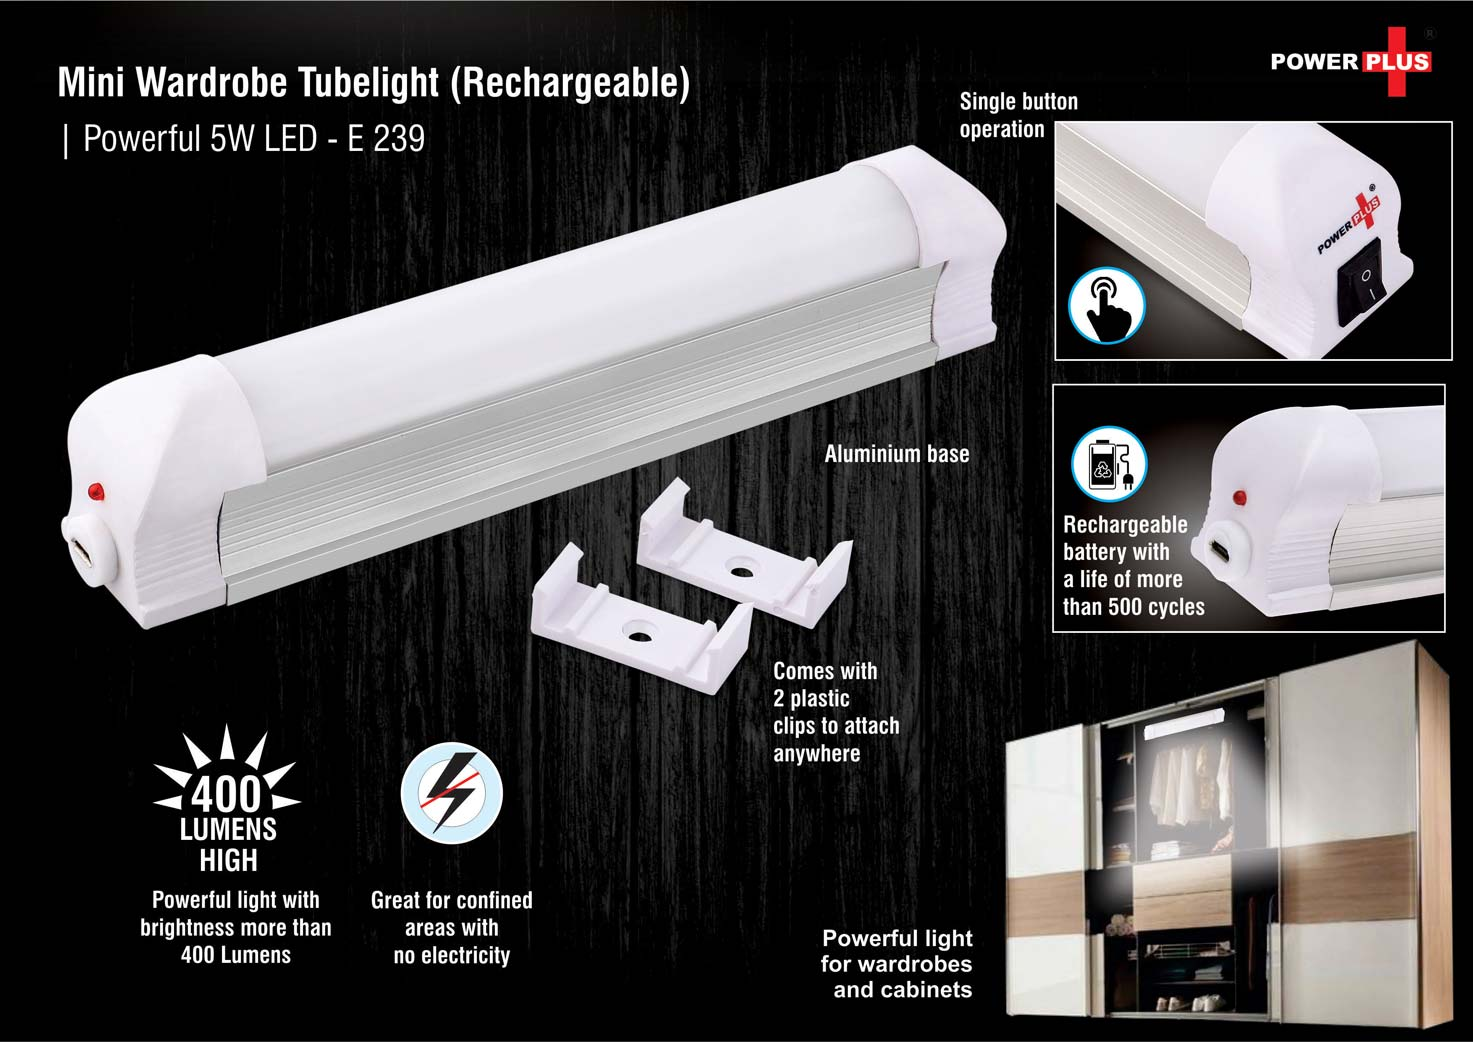 E239 - Mini wardrobe tubelight (Rechargeable) | Powerful 5W LED